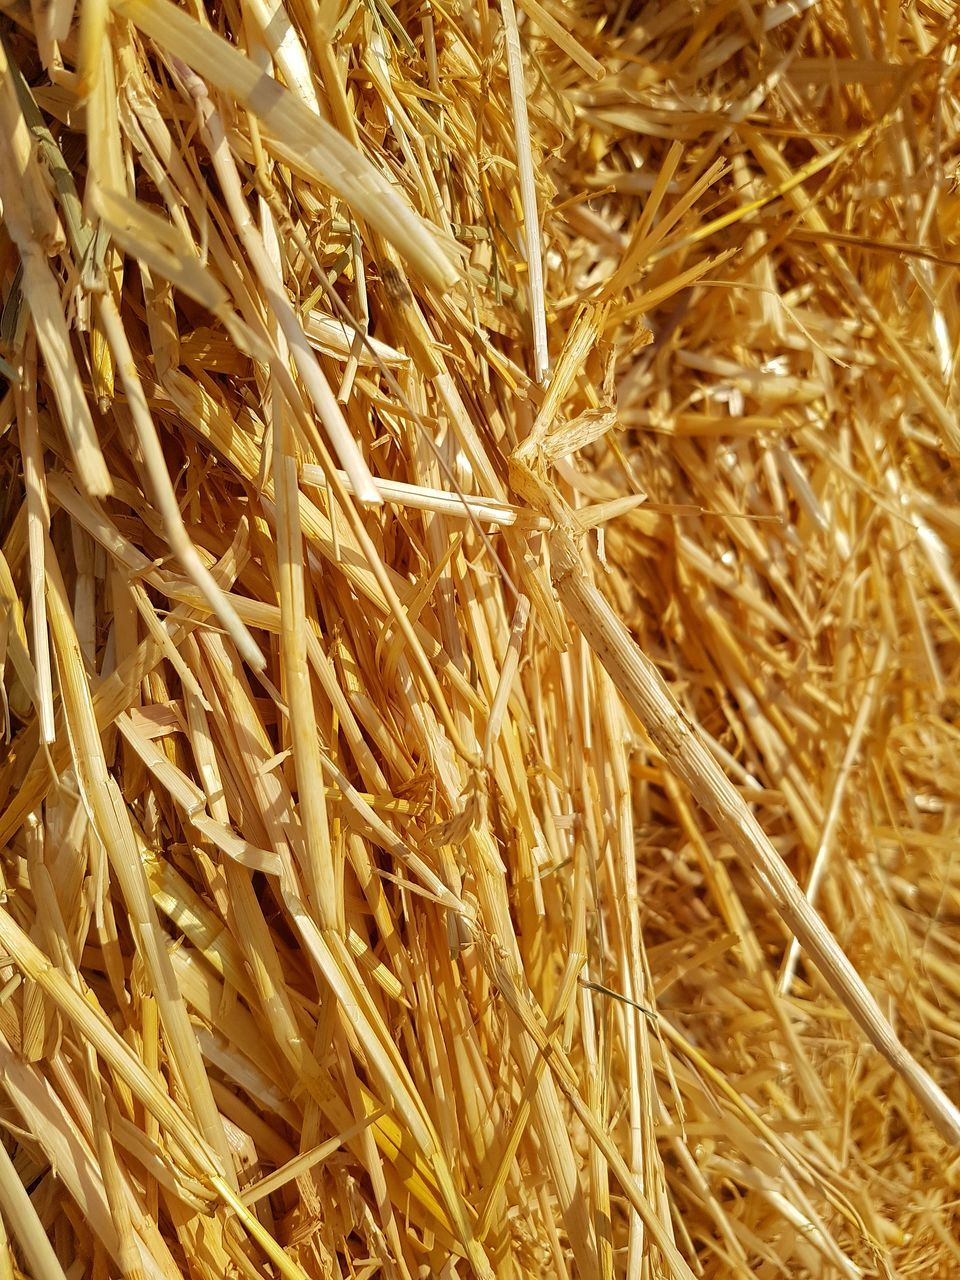 full frame, backgrounds, straw, no people, close-up, yellow, day, nature, outdoors